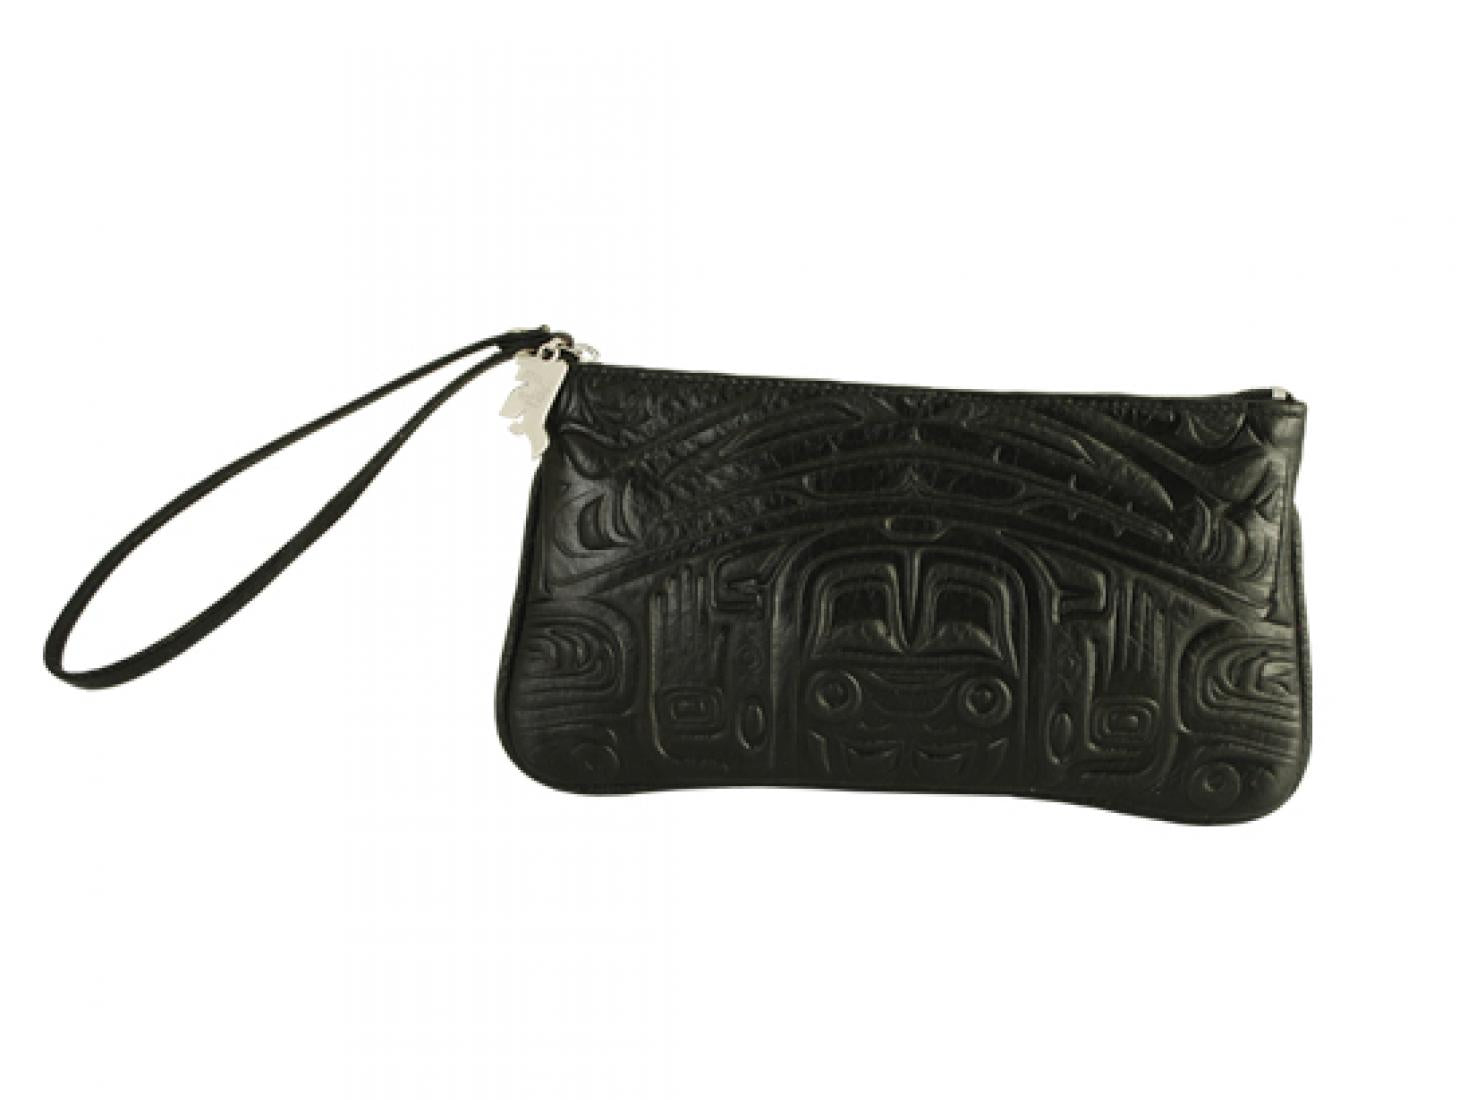 Embossed Leather Wristlet Pouch with Bear Box Design by Clifton Fred, Black